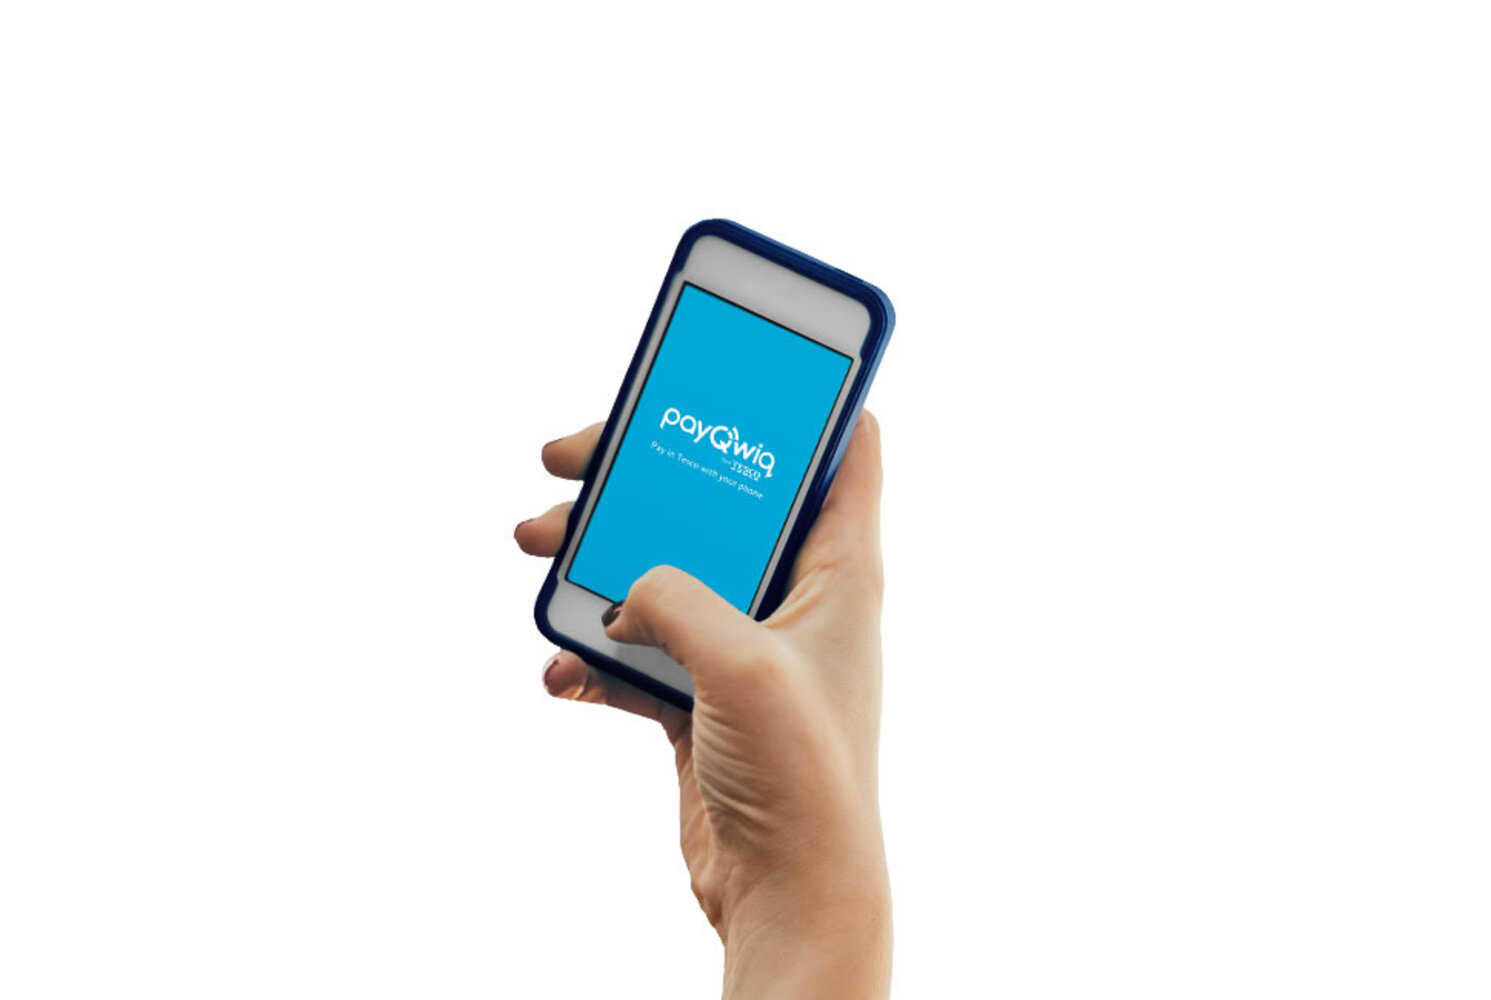 PayQwiq app: the new fast payment app from Tesco Bank, the speedy way to pocket extra Clubcard points